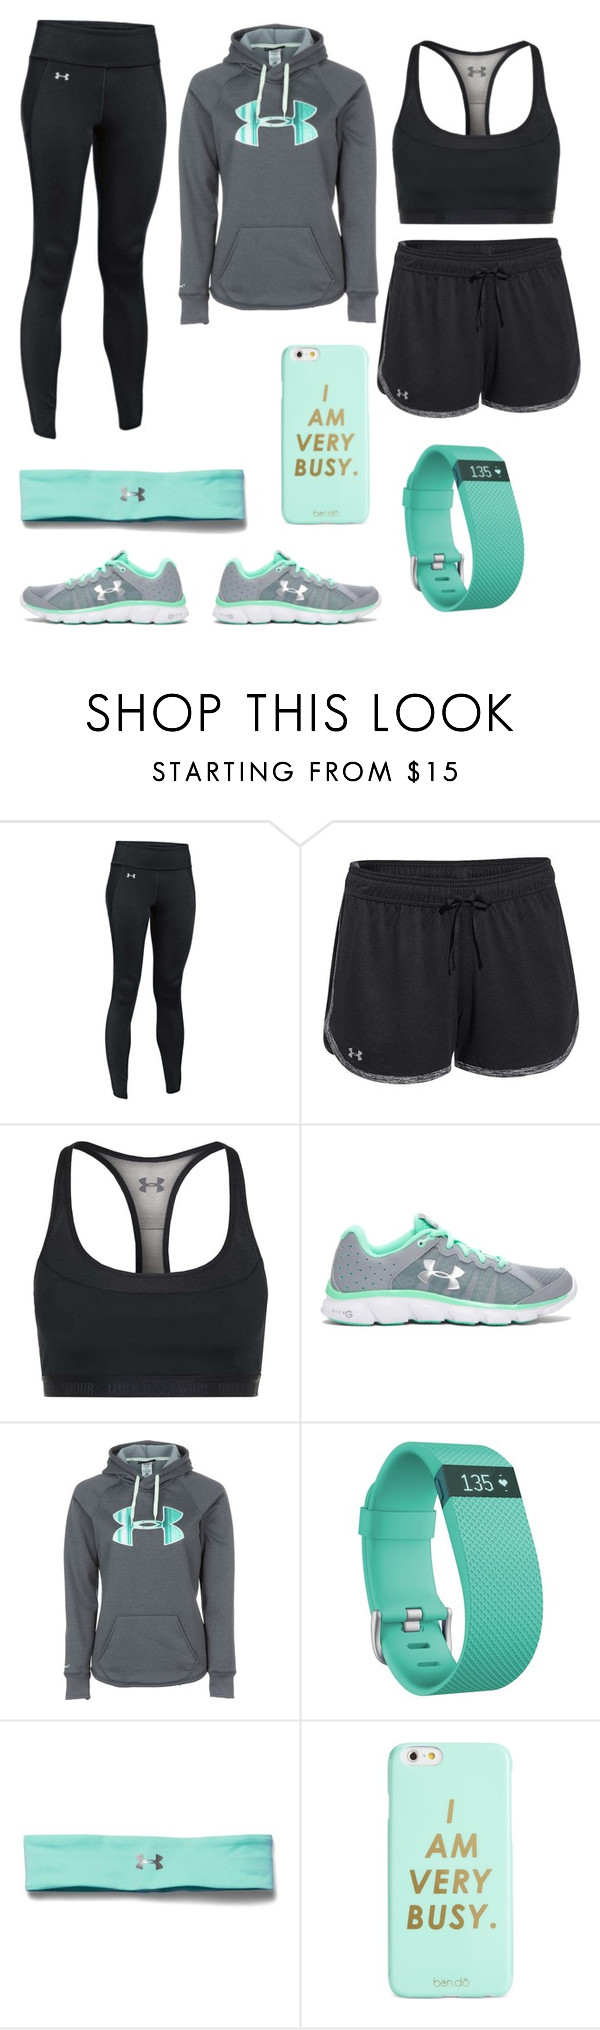 """My Look"" by alivia-morgan ❤ liked on Polyvore featuring Under Armour, Fitbit and ban.do"